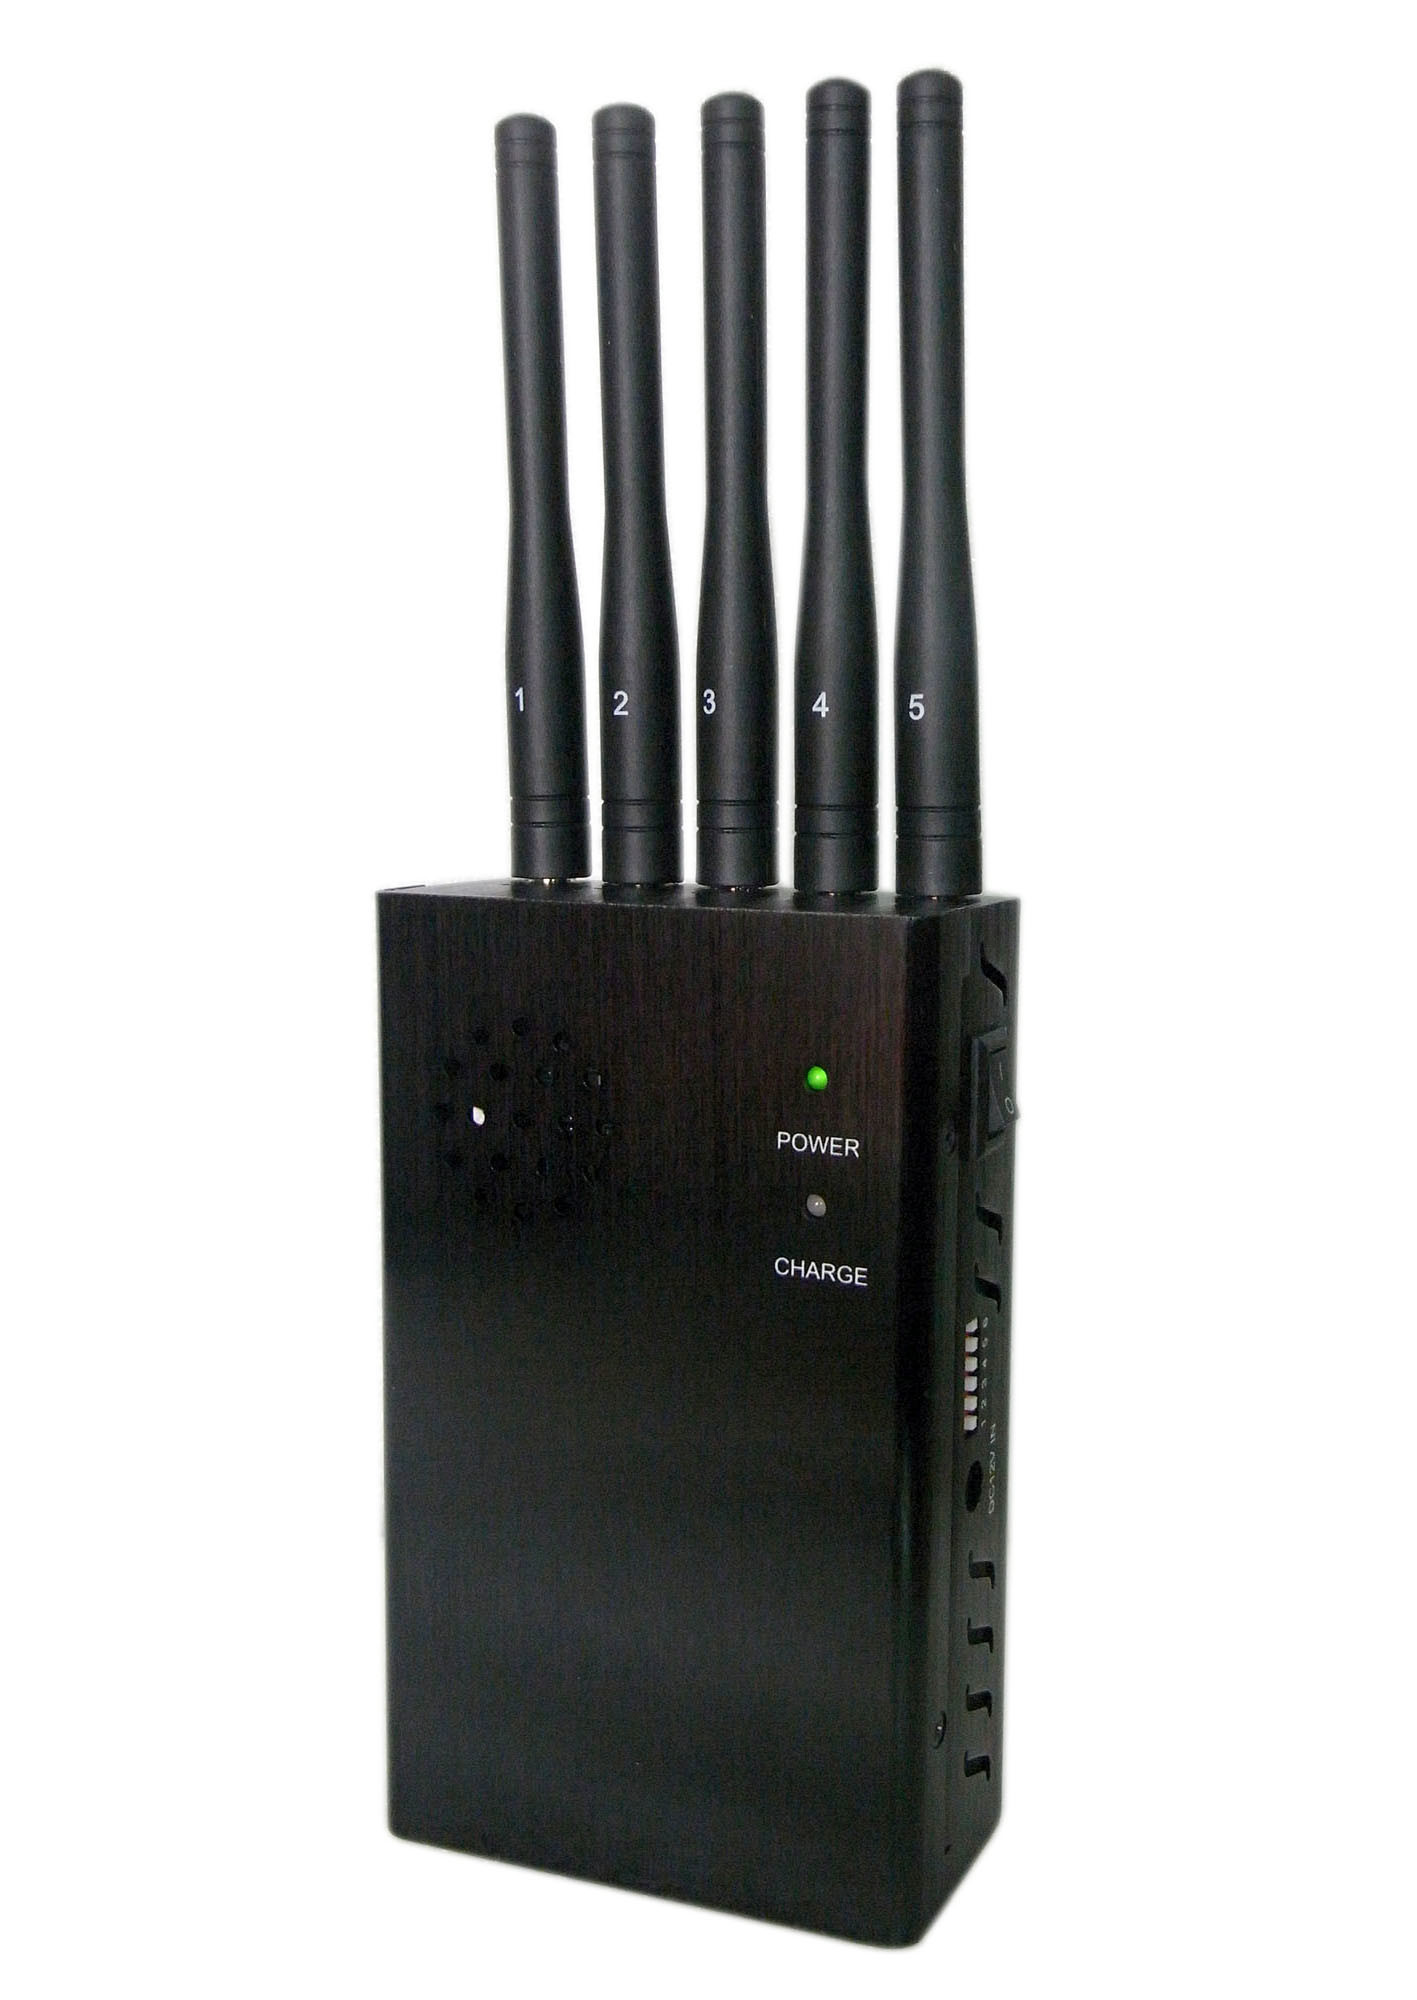 8 Antennas wifi signal Block